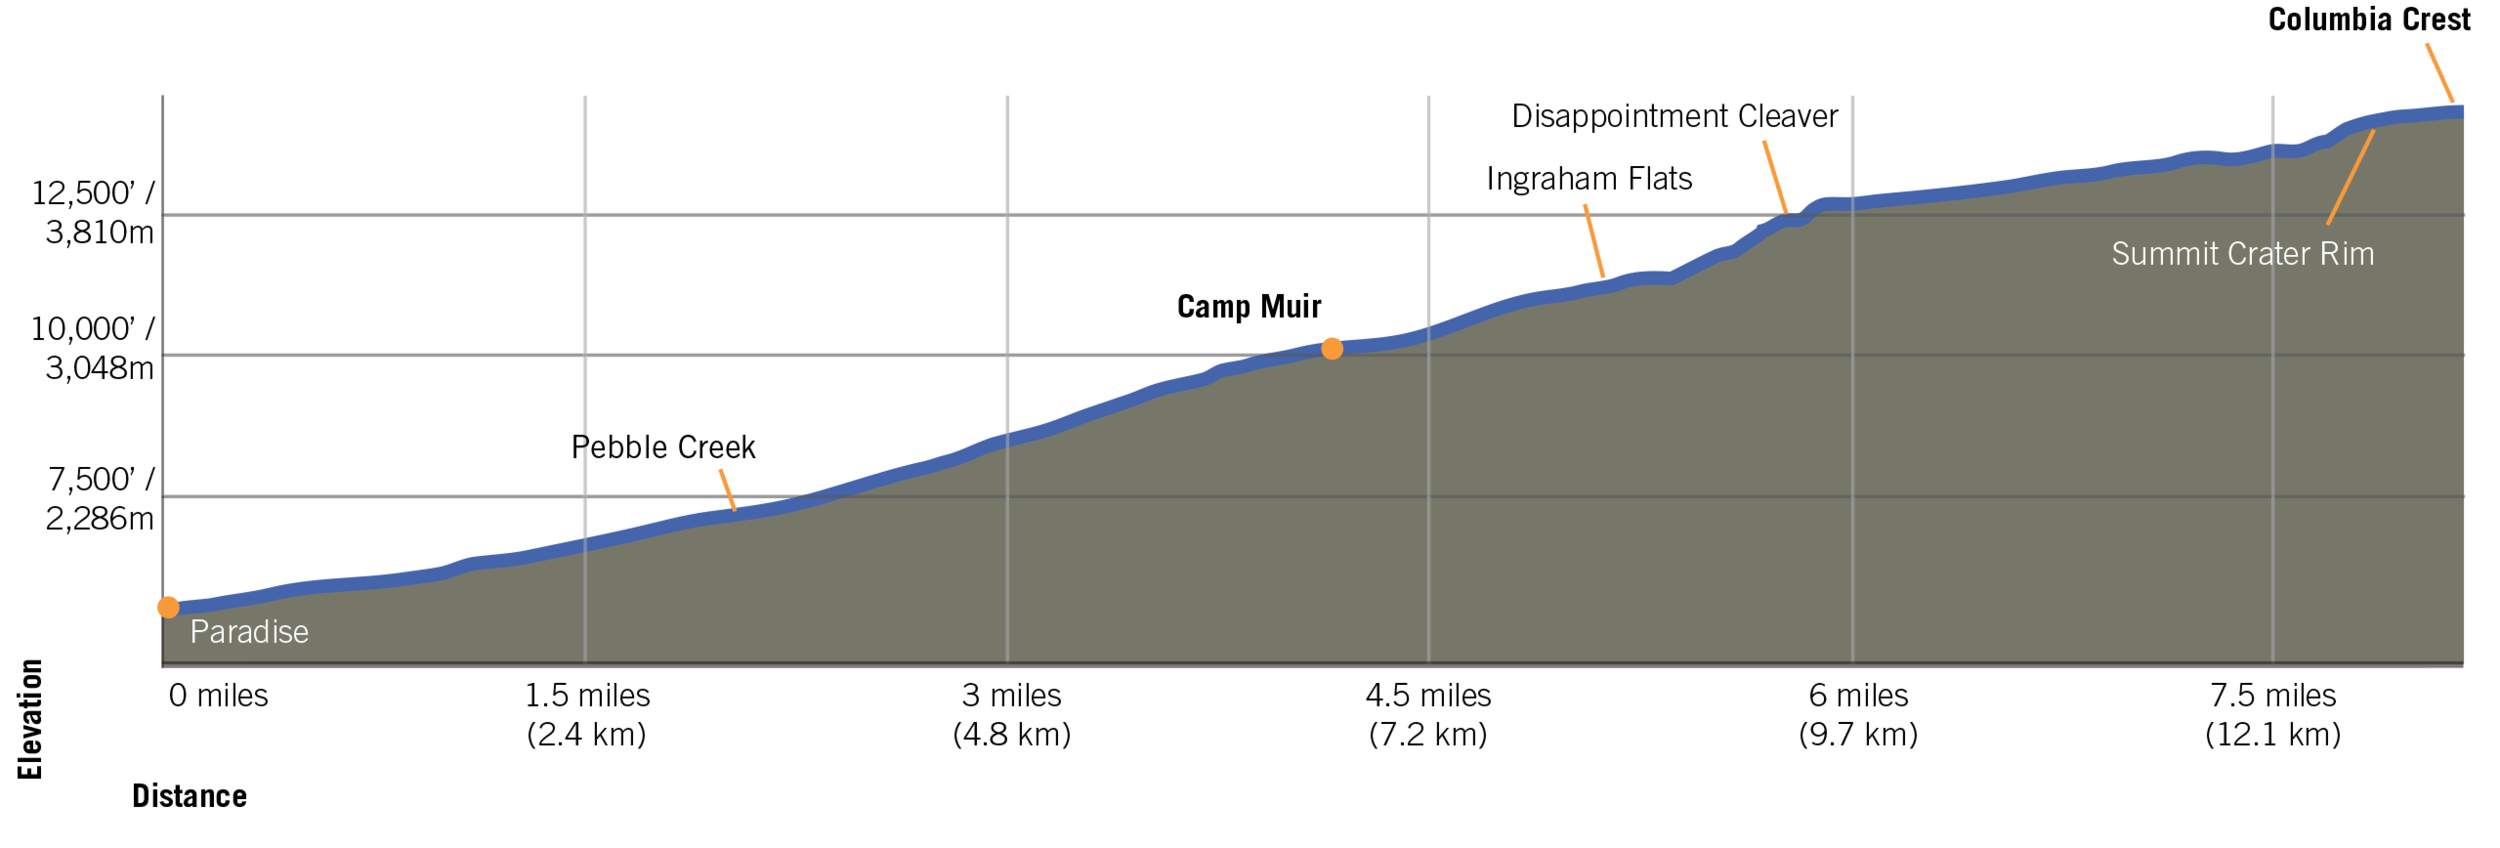 Elevation profile of the climb, credit to RMI expeditions for the graph